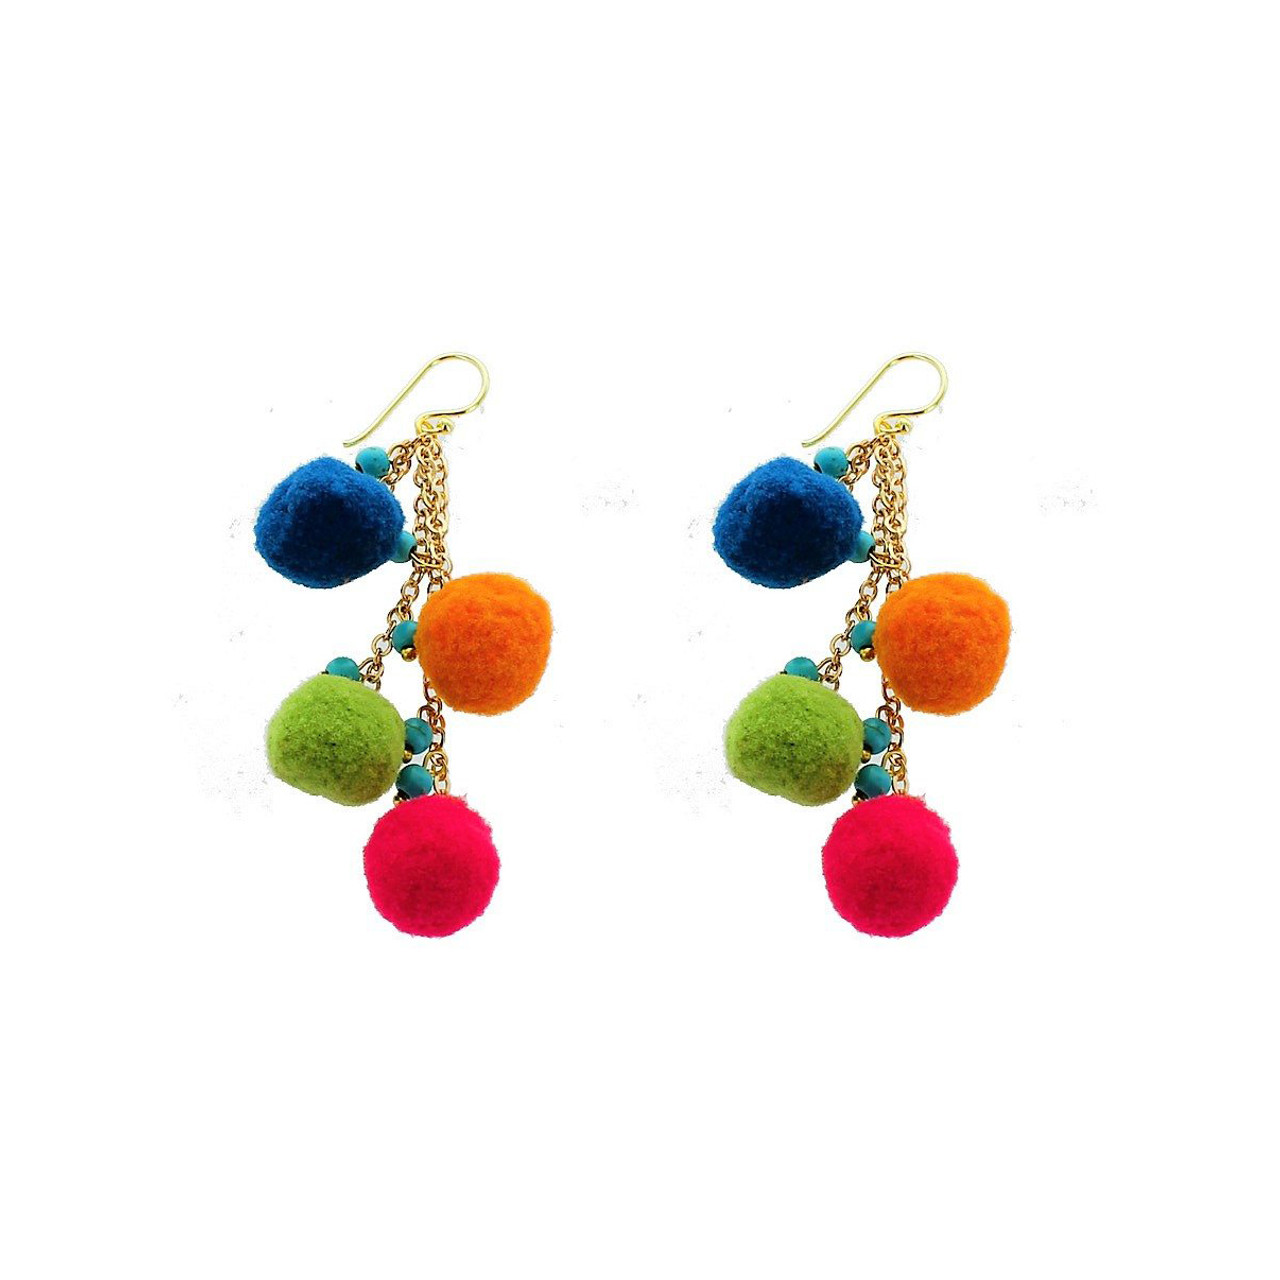 zara en united sale from jewelry accessories us colored multi multicolored earrings woman of image